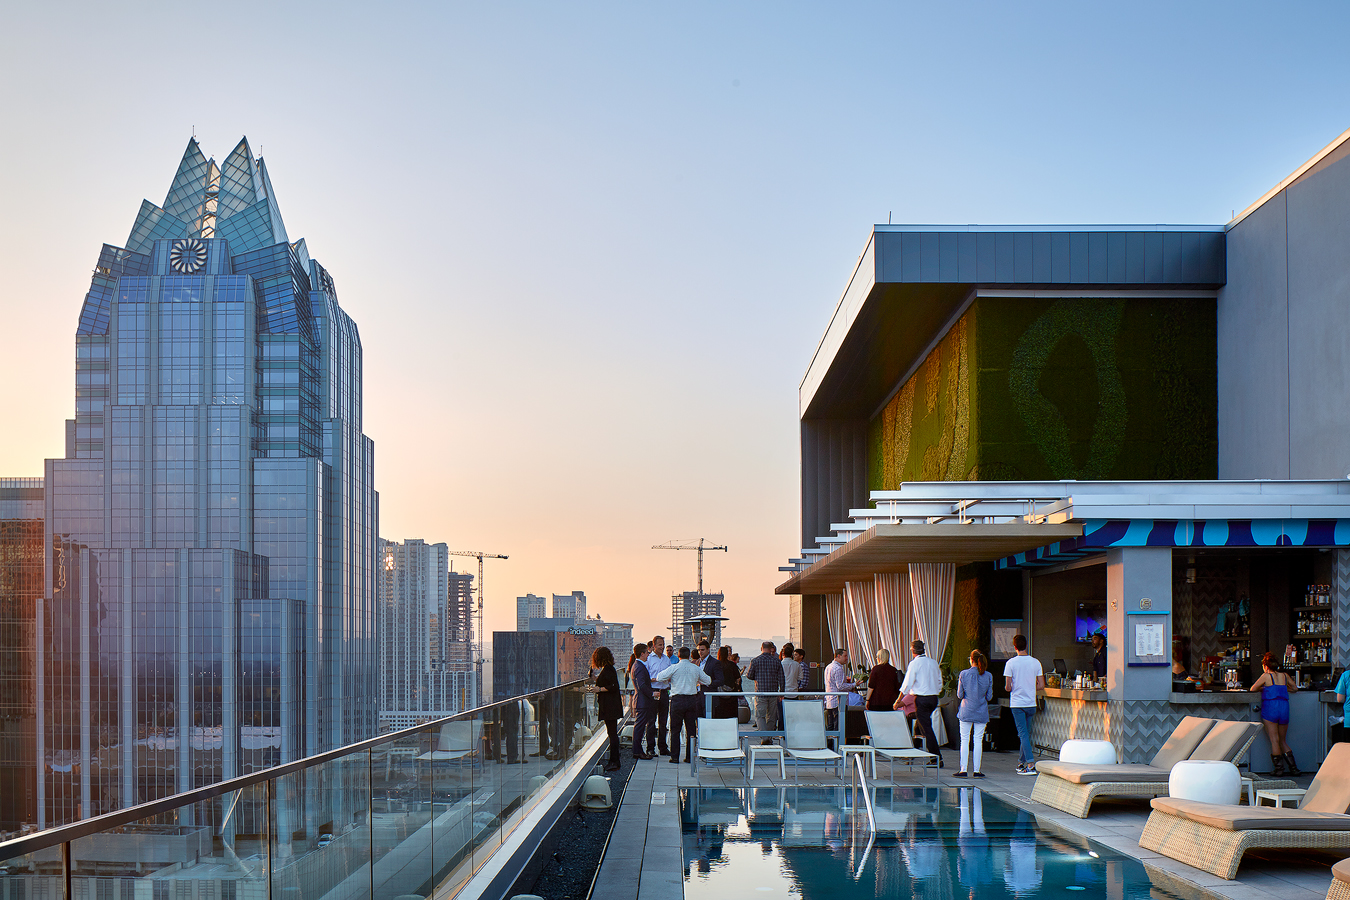 dror baldinger FAIA architectural photography westin hotel Austin rooftop swimming  pool bar evening skyline